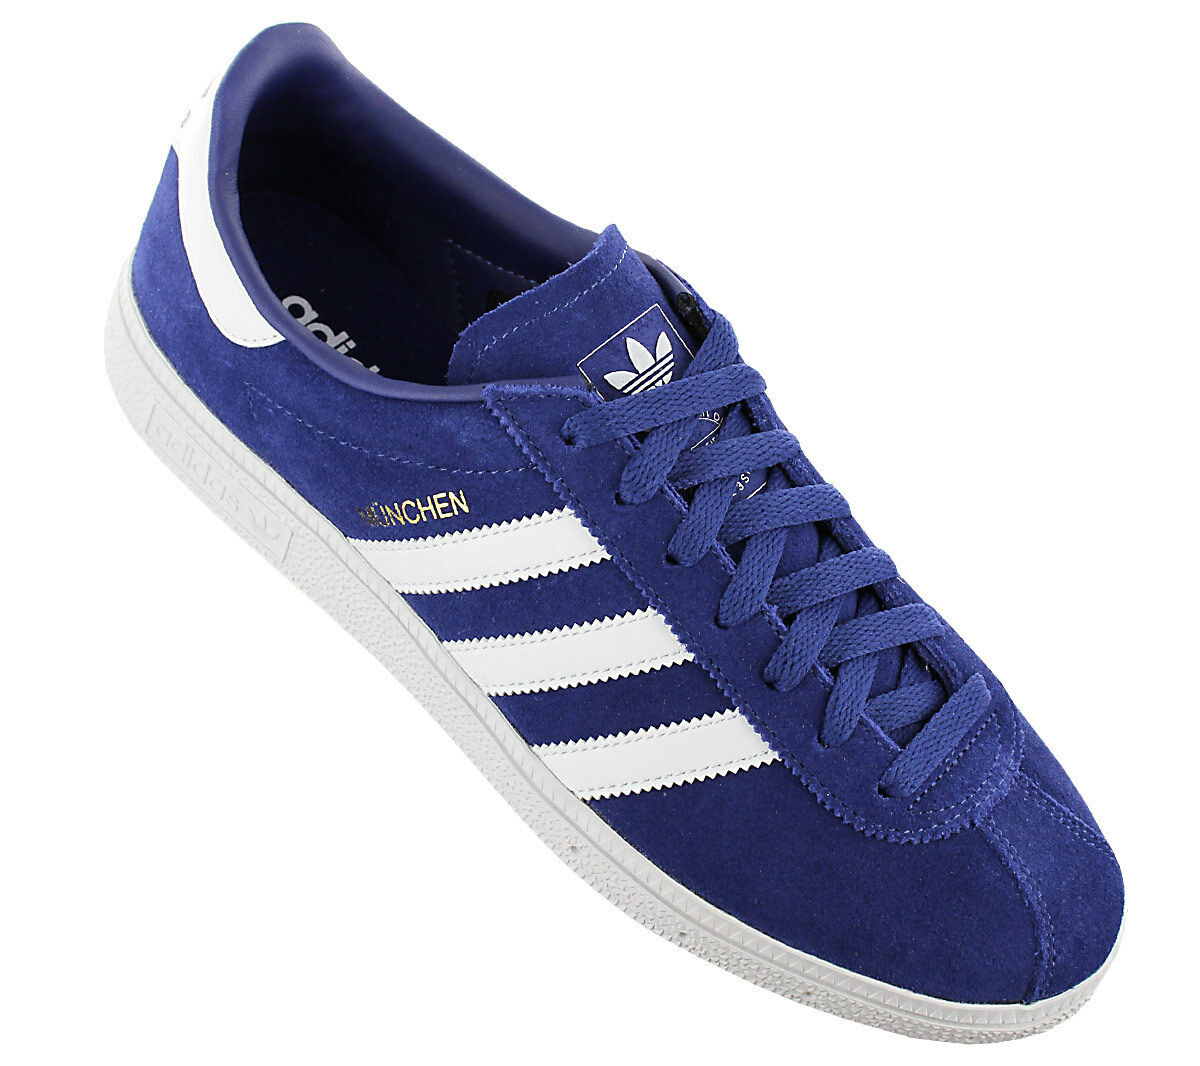 NEW adidas München BY9787 Men''s shoes Trainers Sneakers SALE